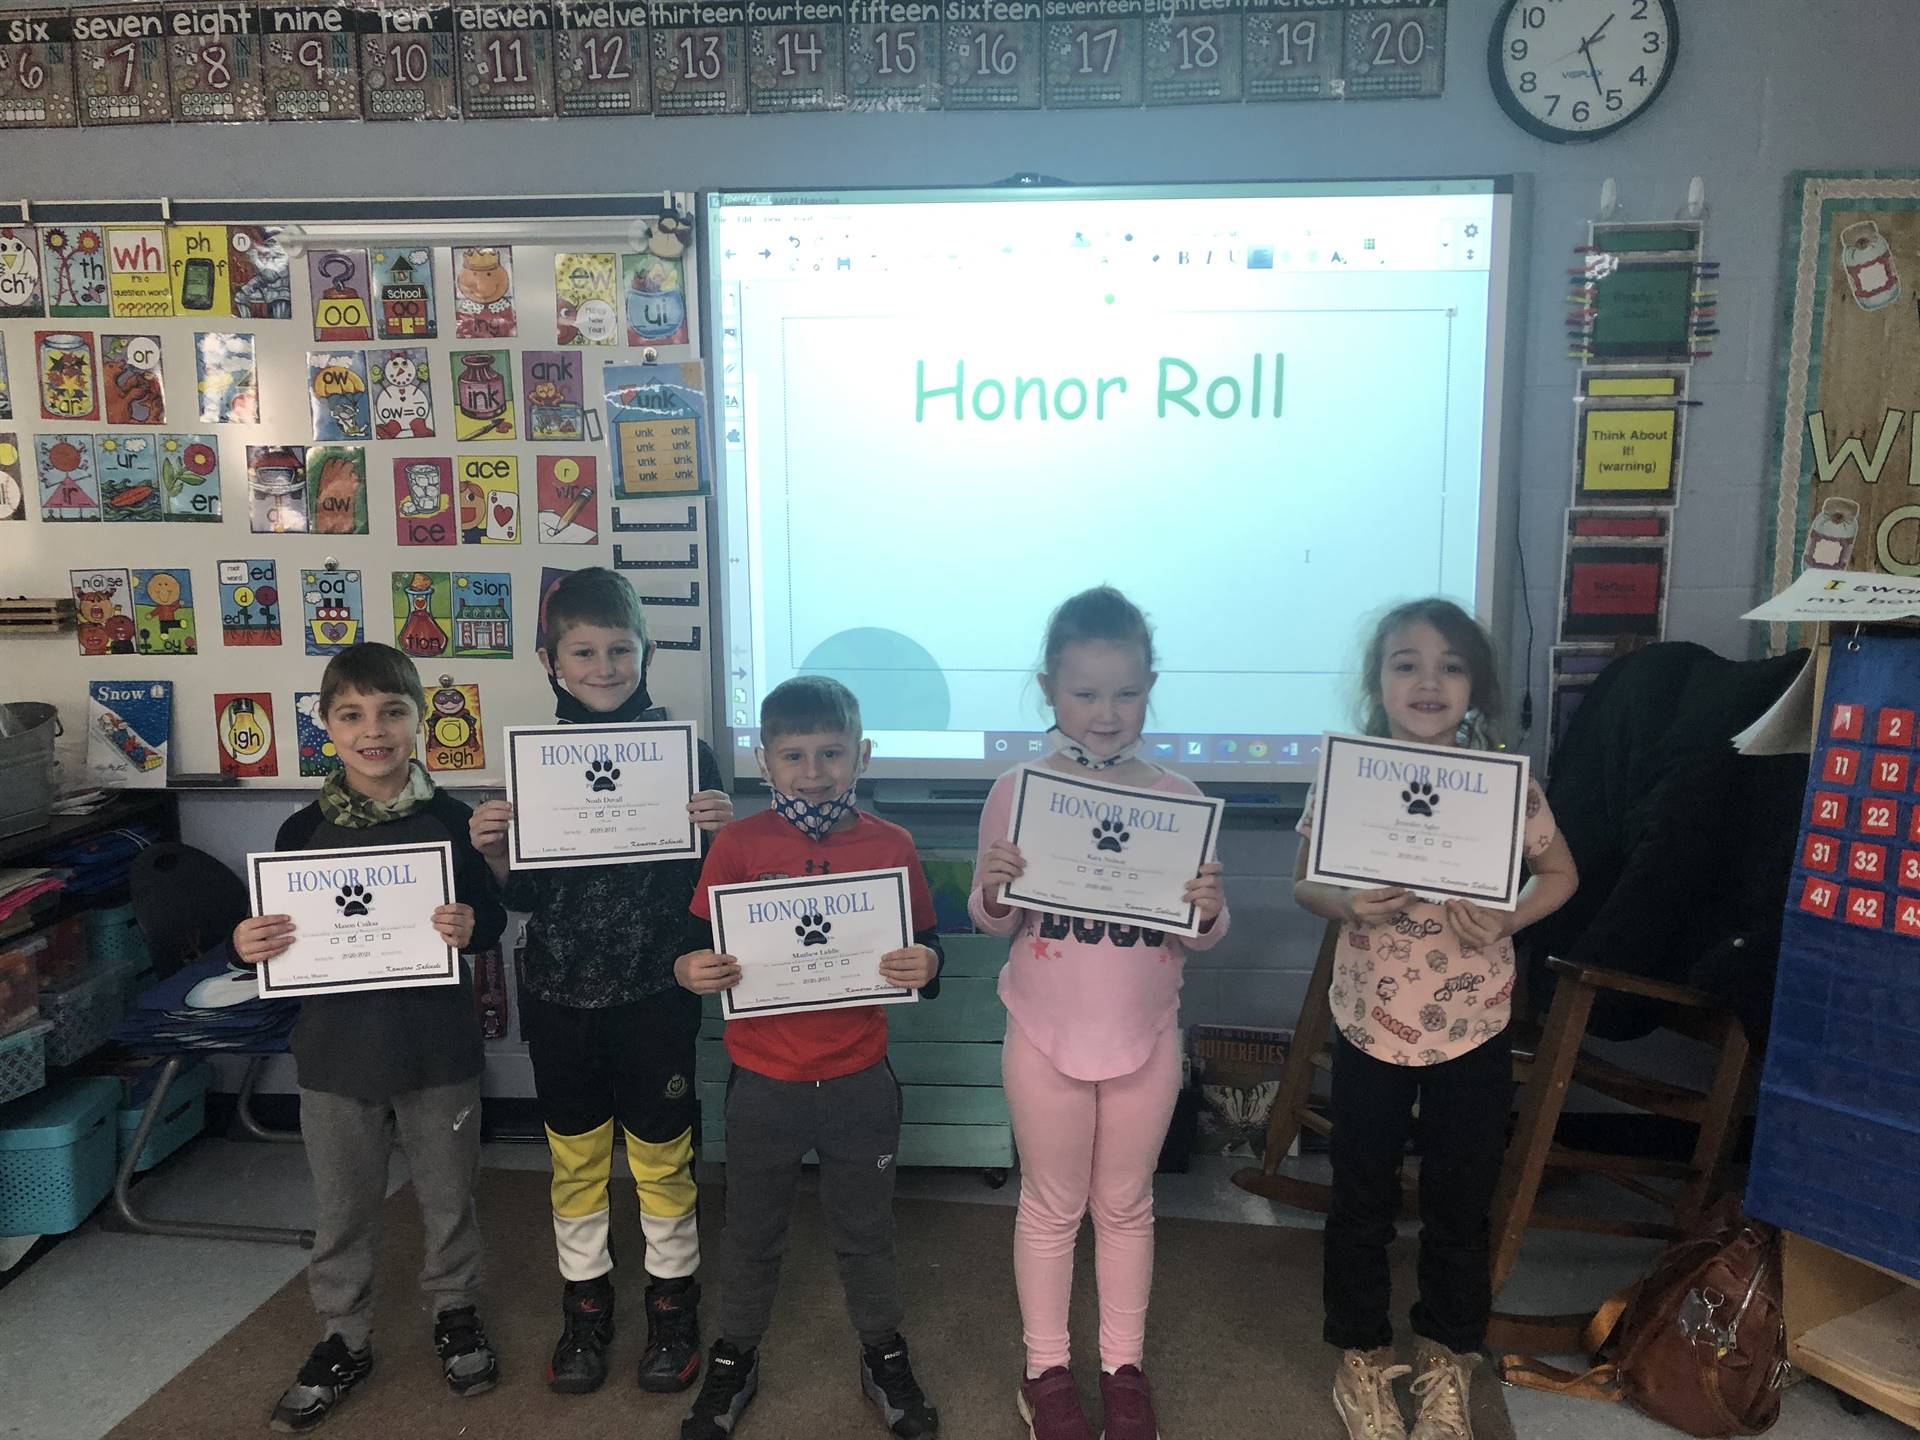 Mrs. Liston's Honor Roll